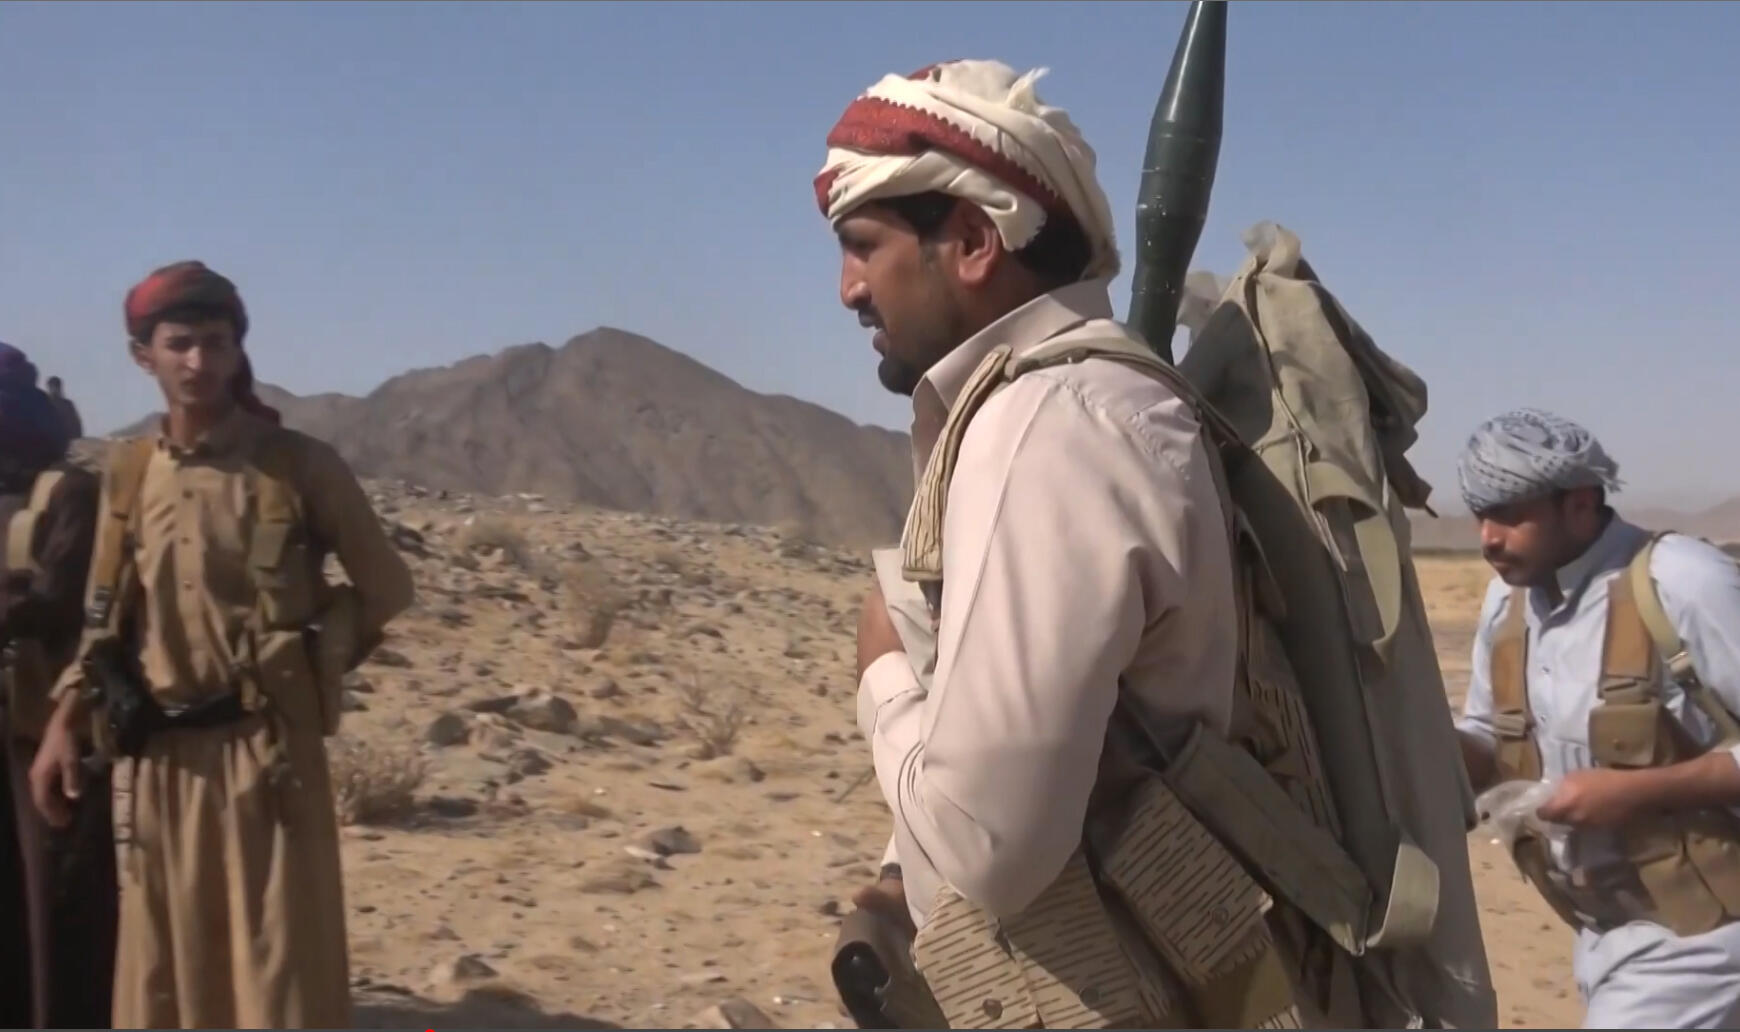 A grab from an AFPTV video shows Yemeni pro-government fighters on September 27